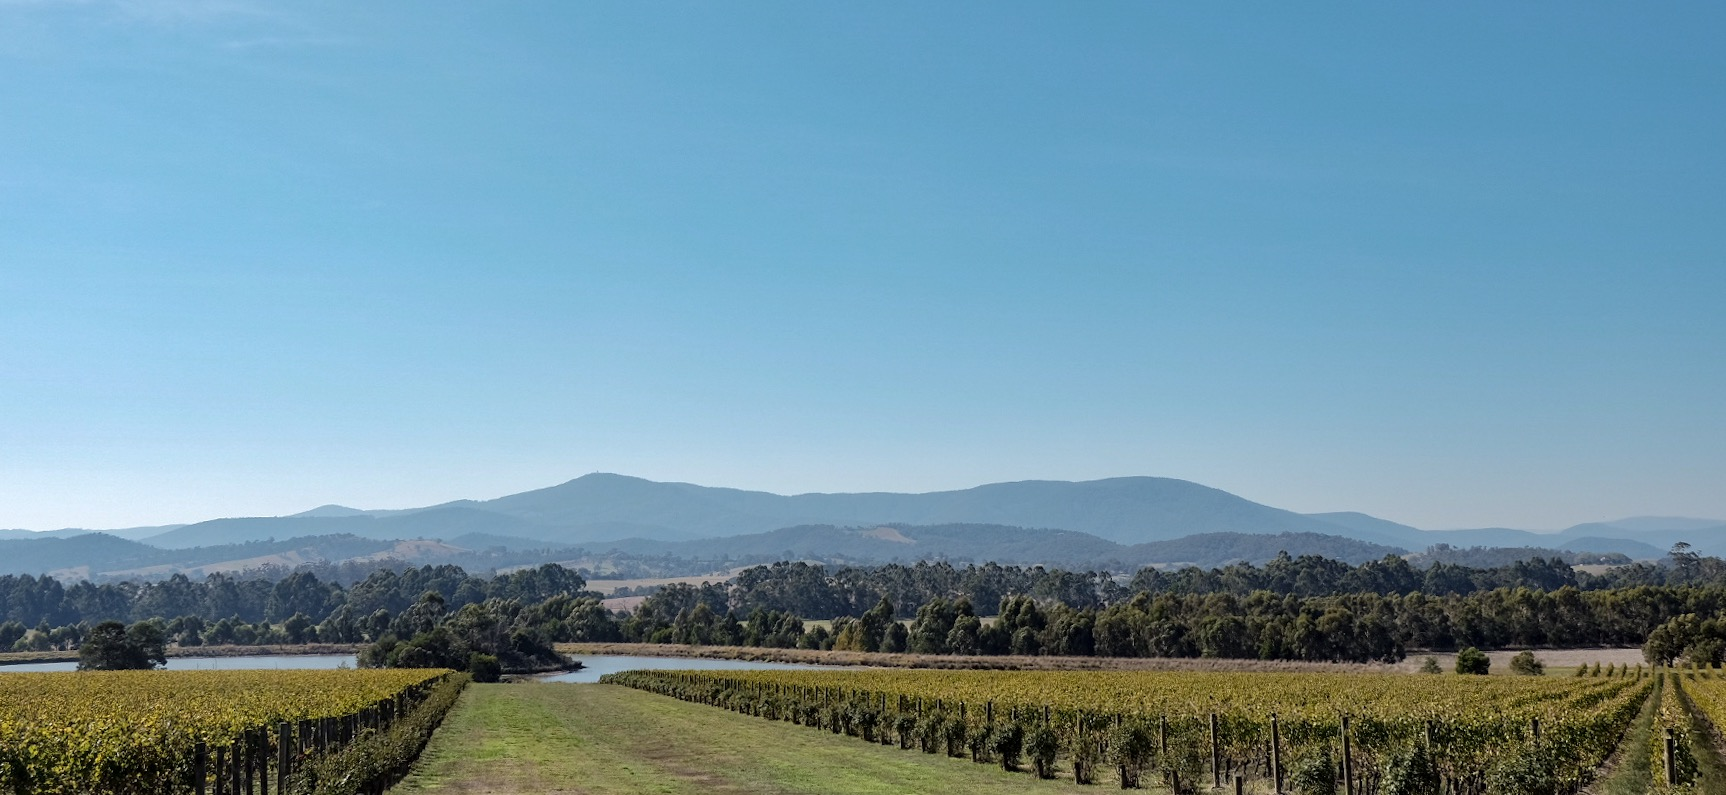 The heart of Yarra Valley: fields of grapes as far as the eye can see.